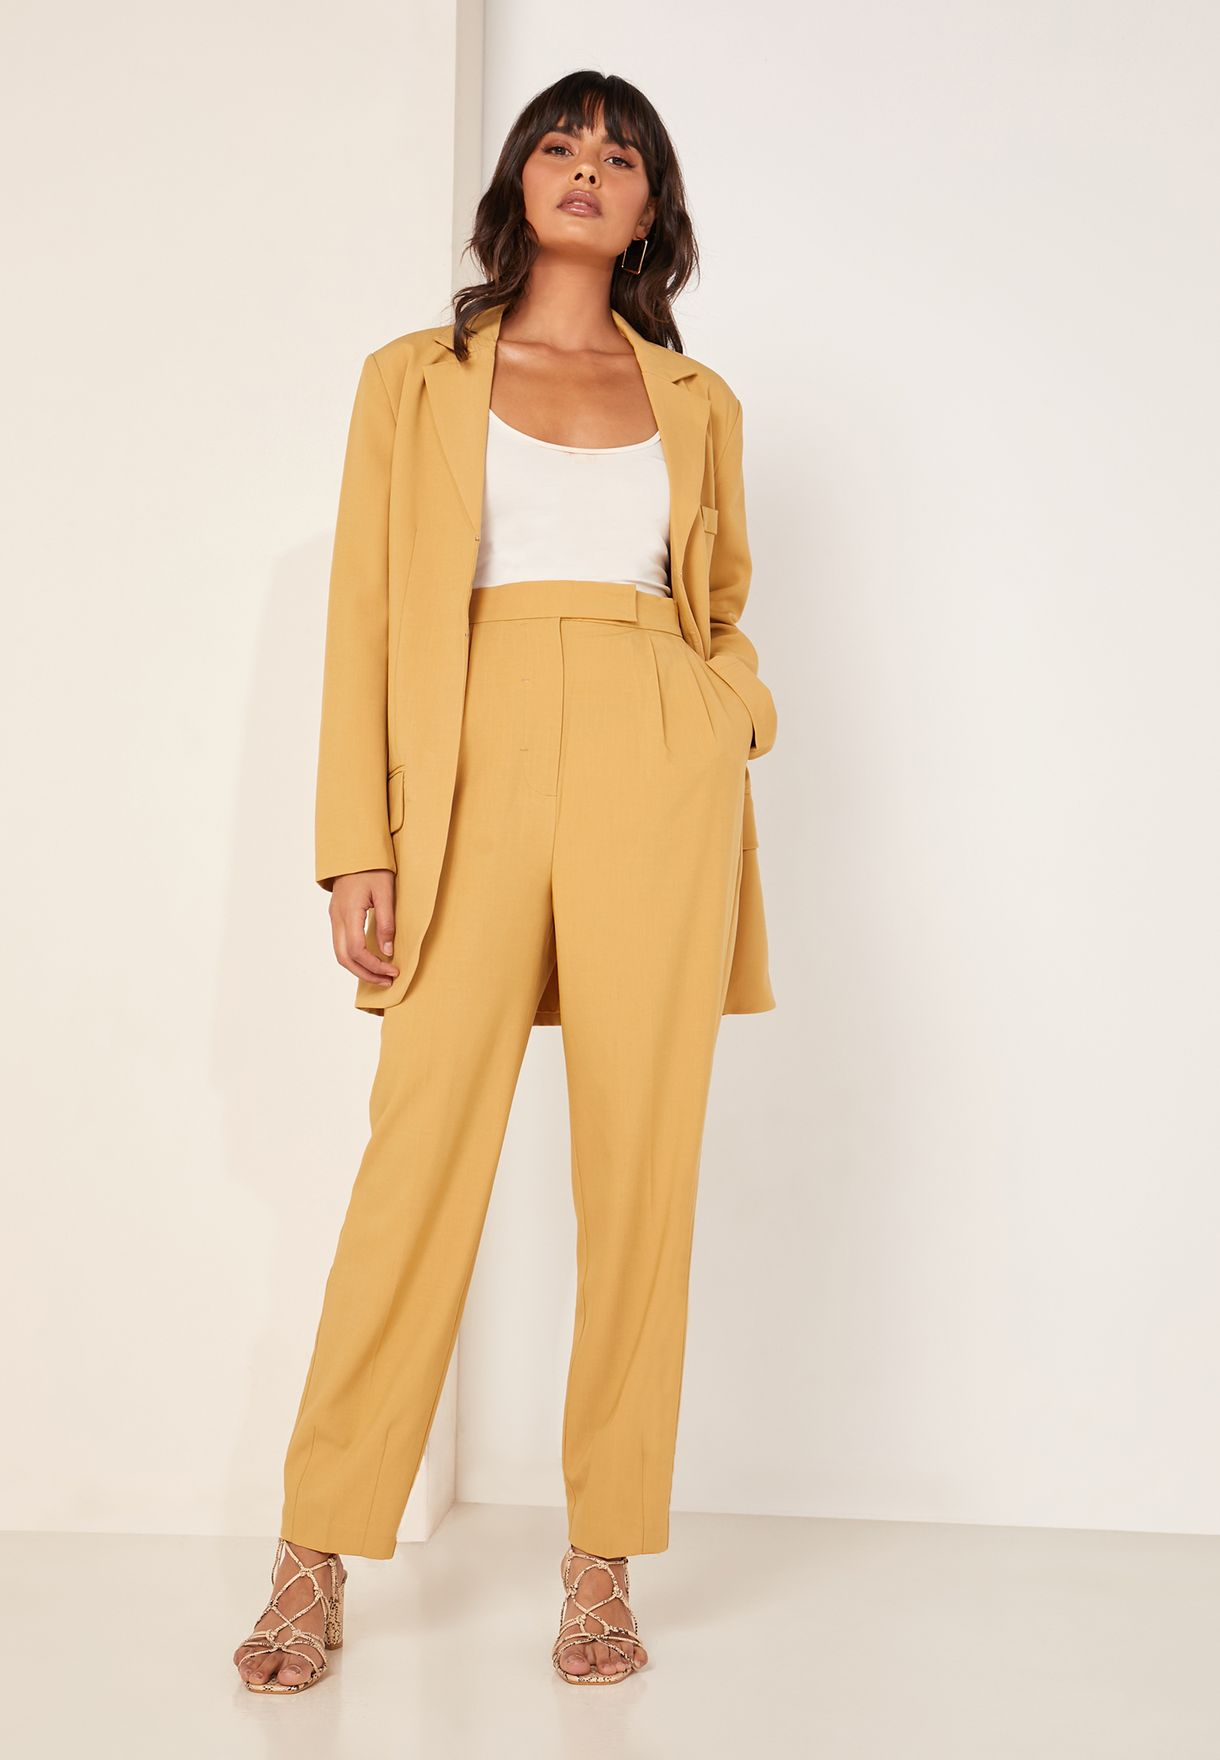 Buy C/meo Collective Yellow Against You Ankle Grazer Pants For Women, Uae 20008at07tpp